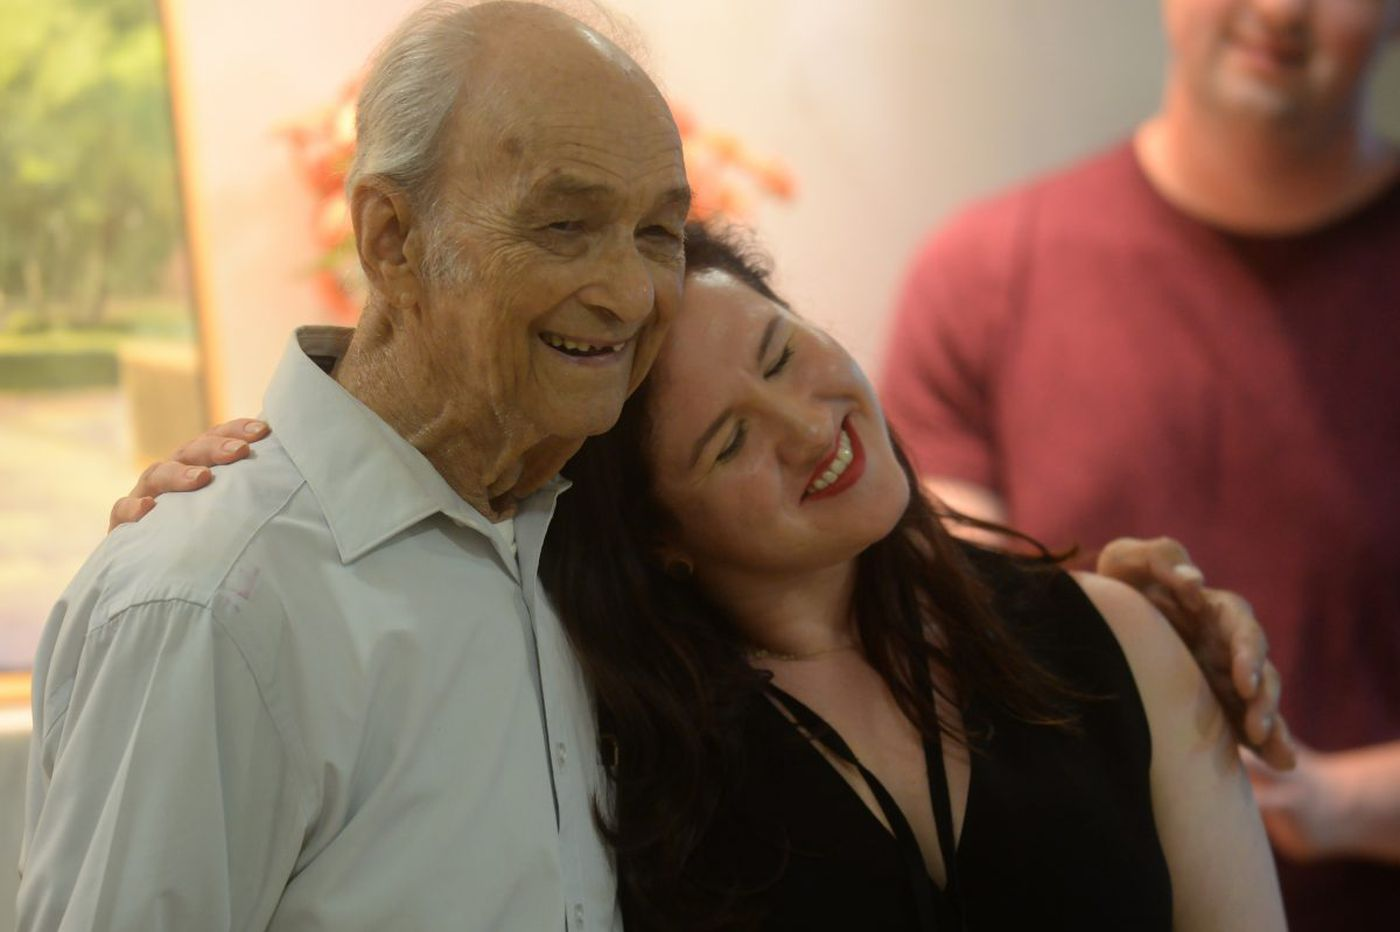 He's 93, he's dying and he wrote a comedy about it